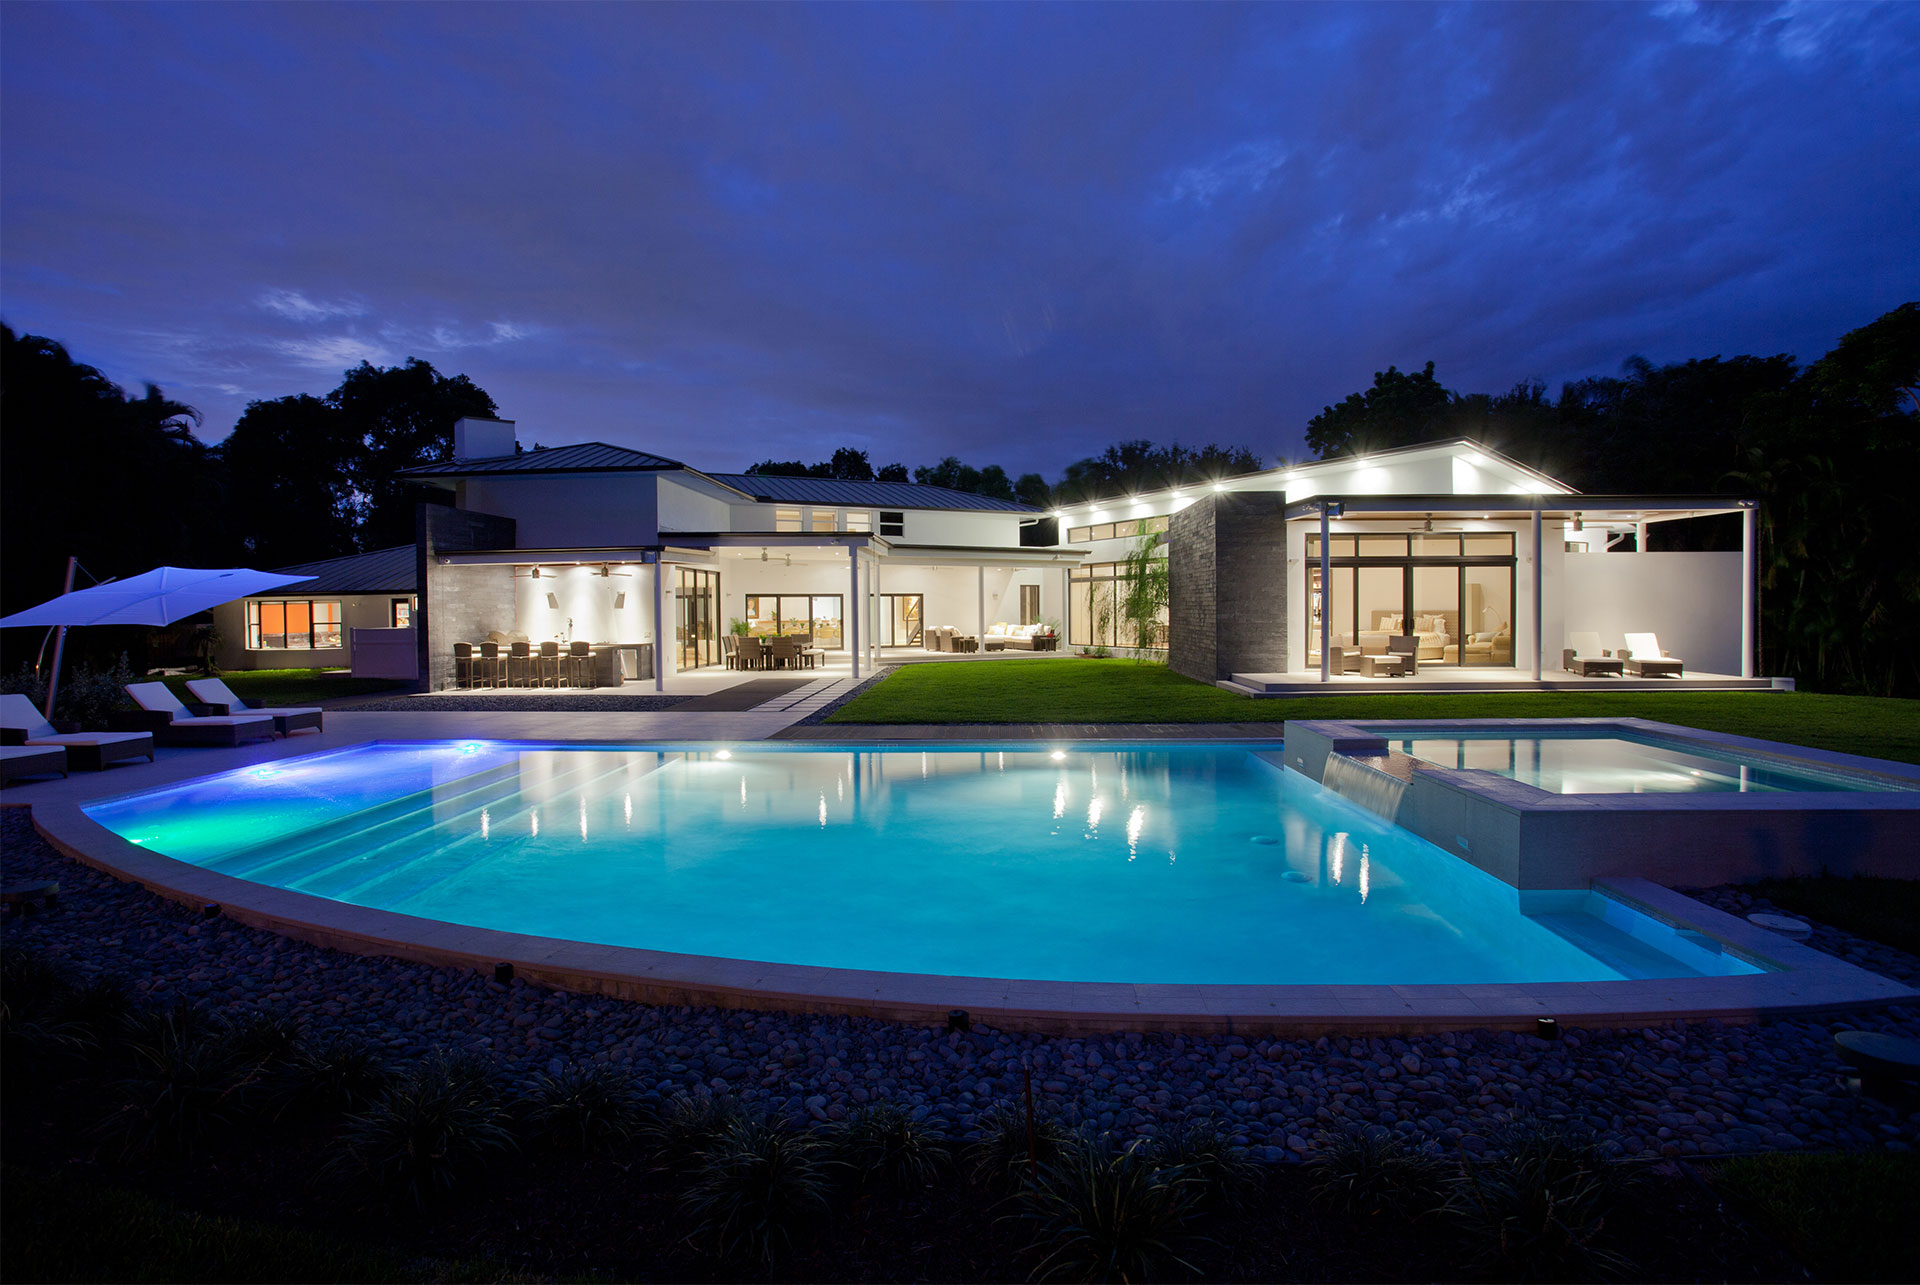 Architecture project in Southwest Ranches, Florida